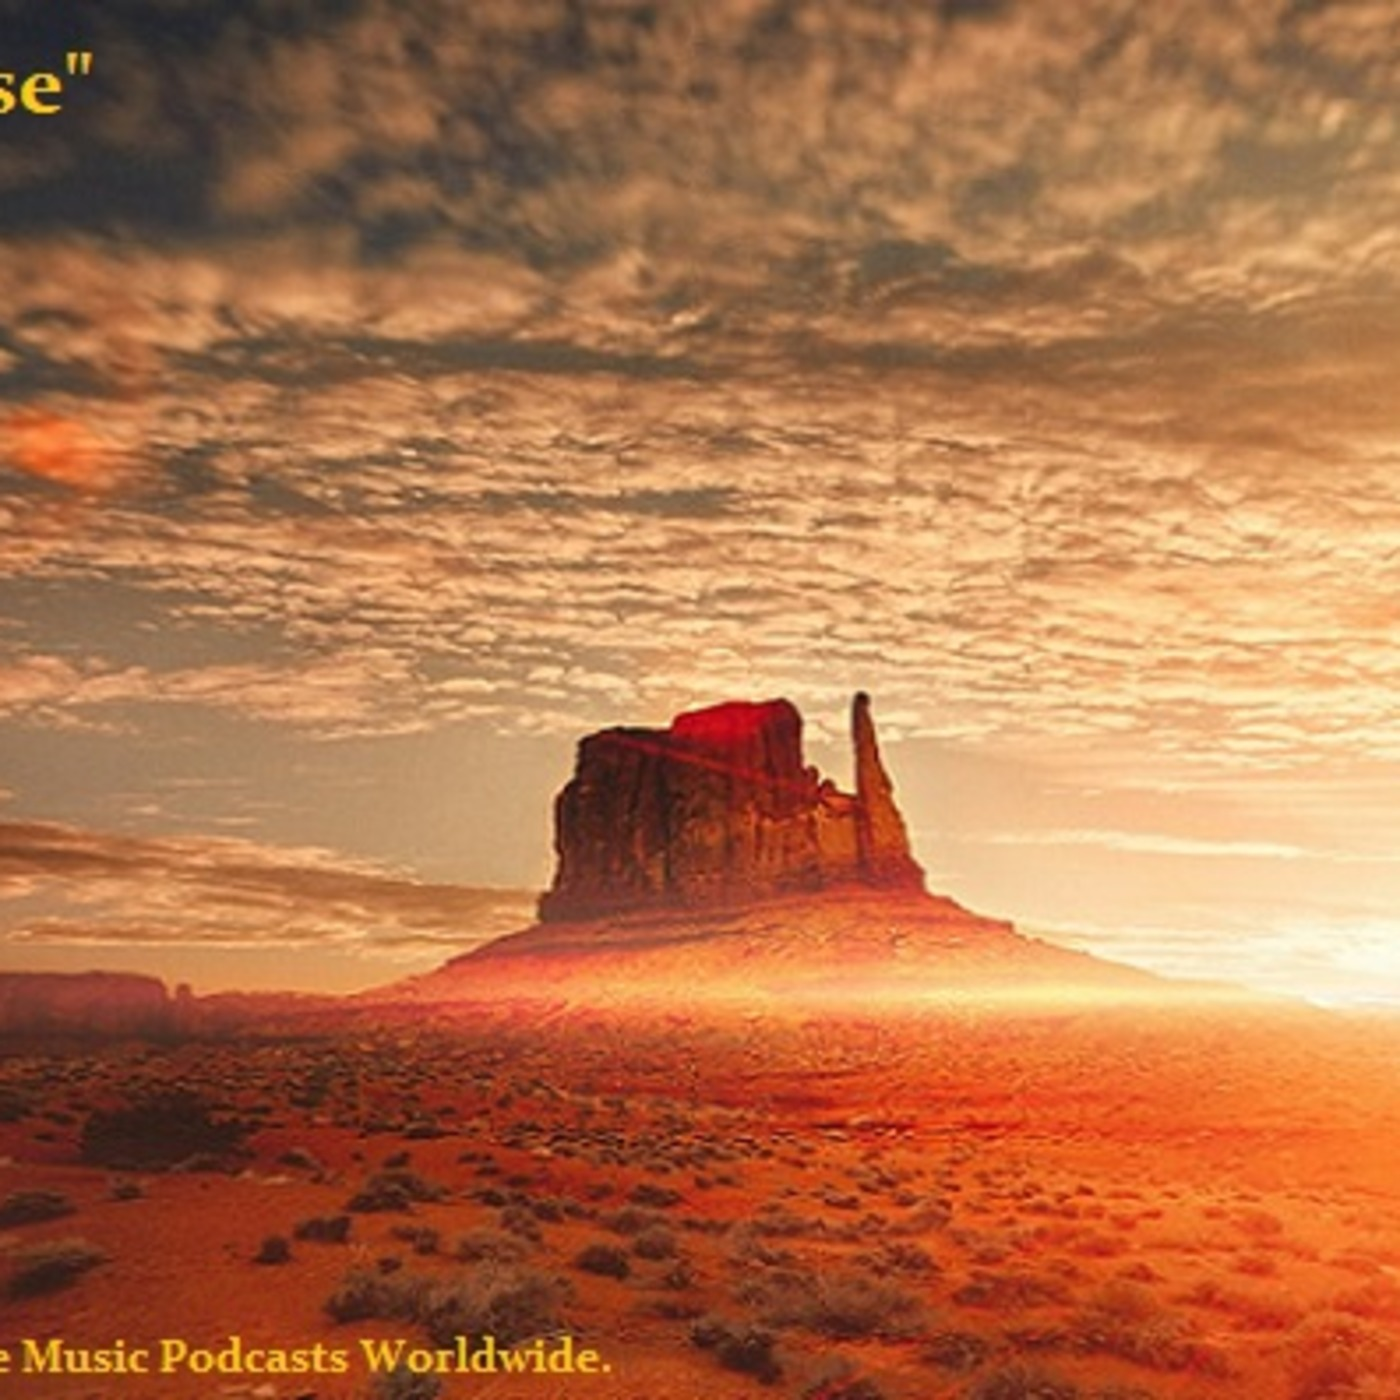 After Sunrise (New Electronic Music) Ken Steele Music Podcasts